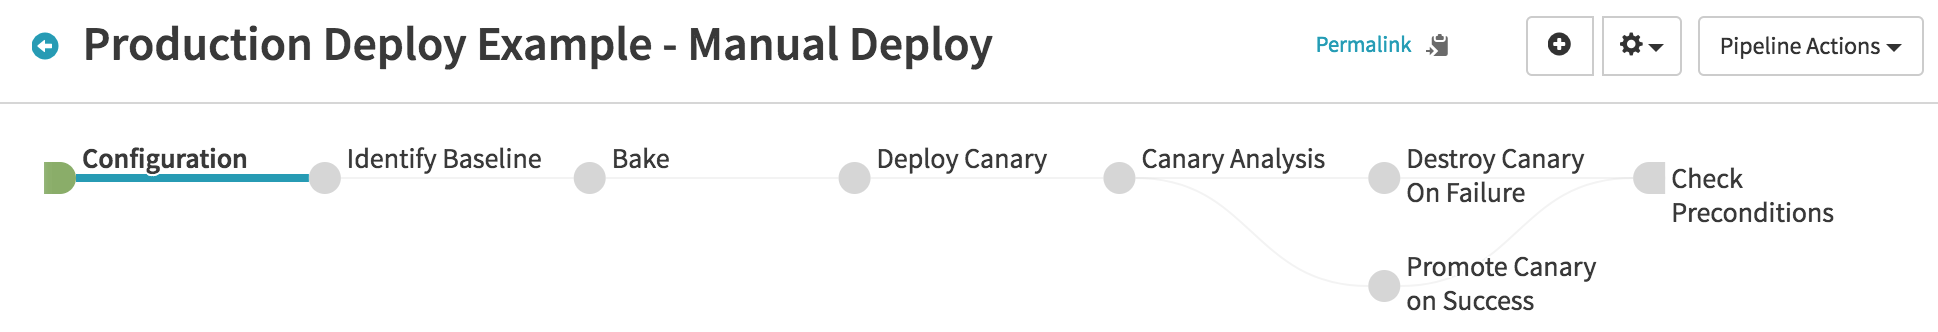 Canary Deploy Pipeline